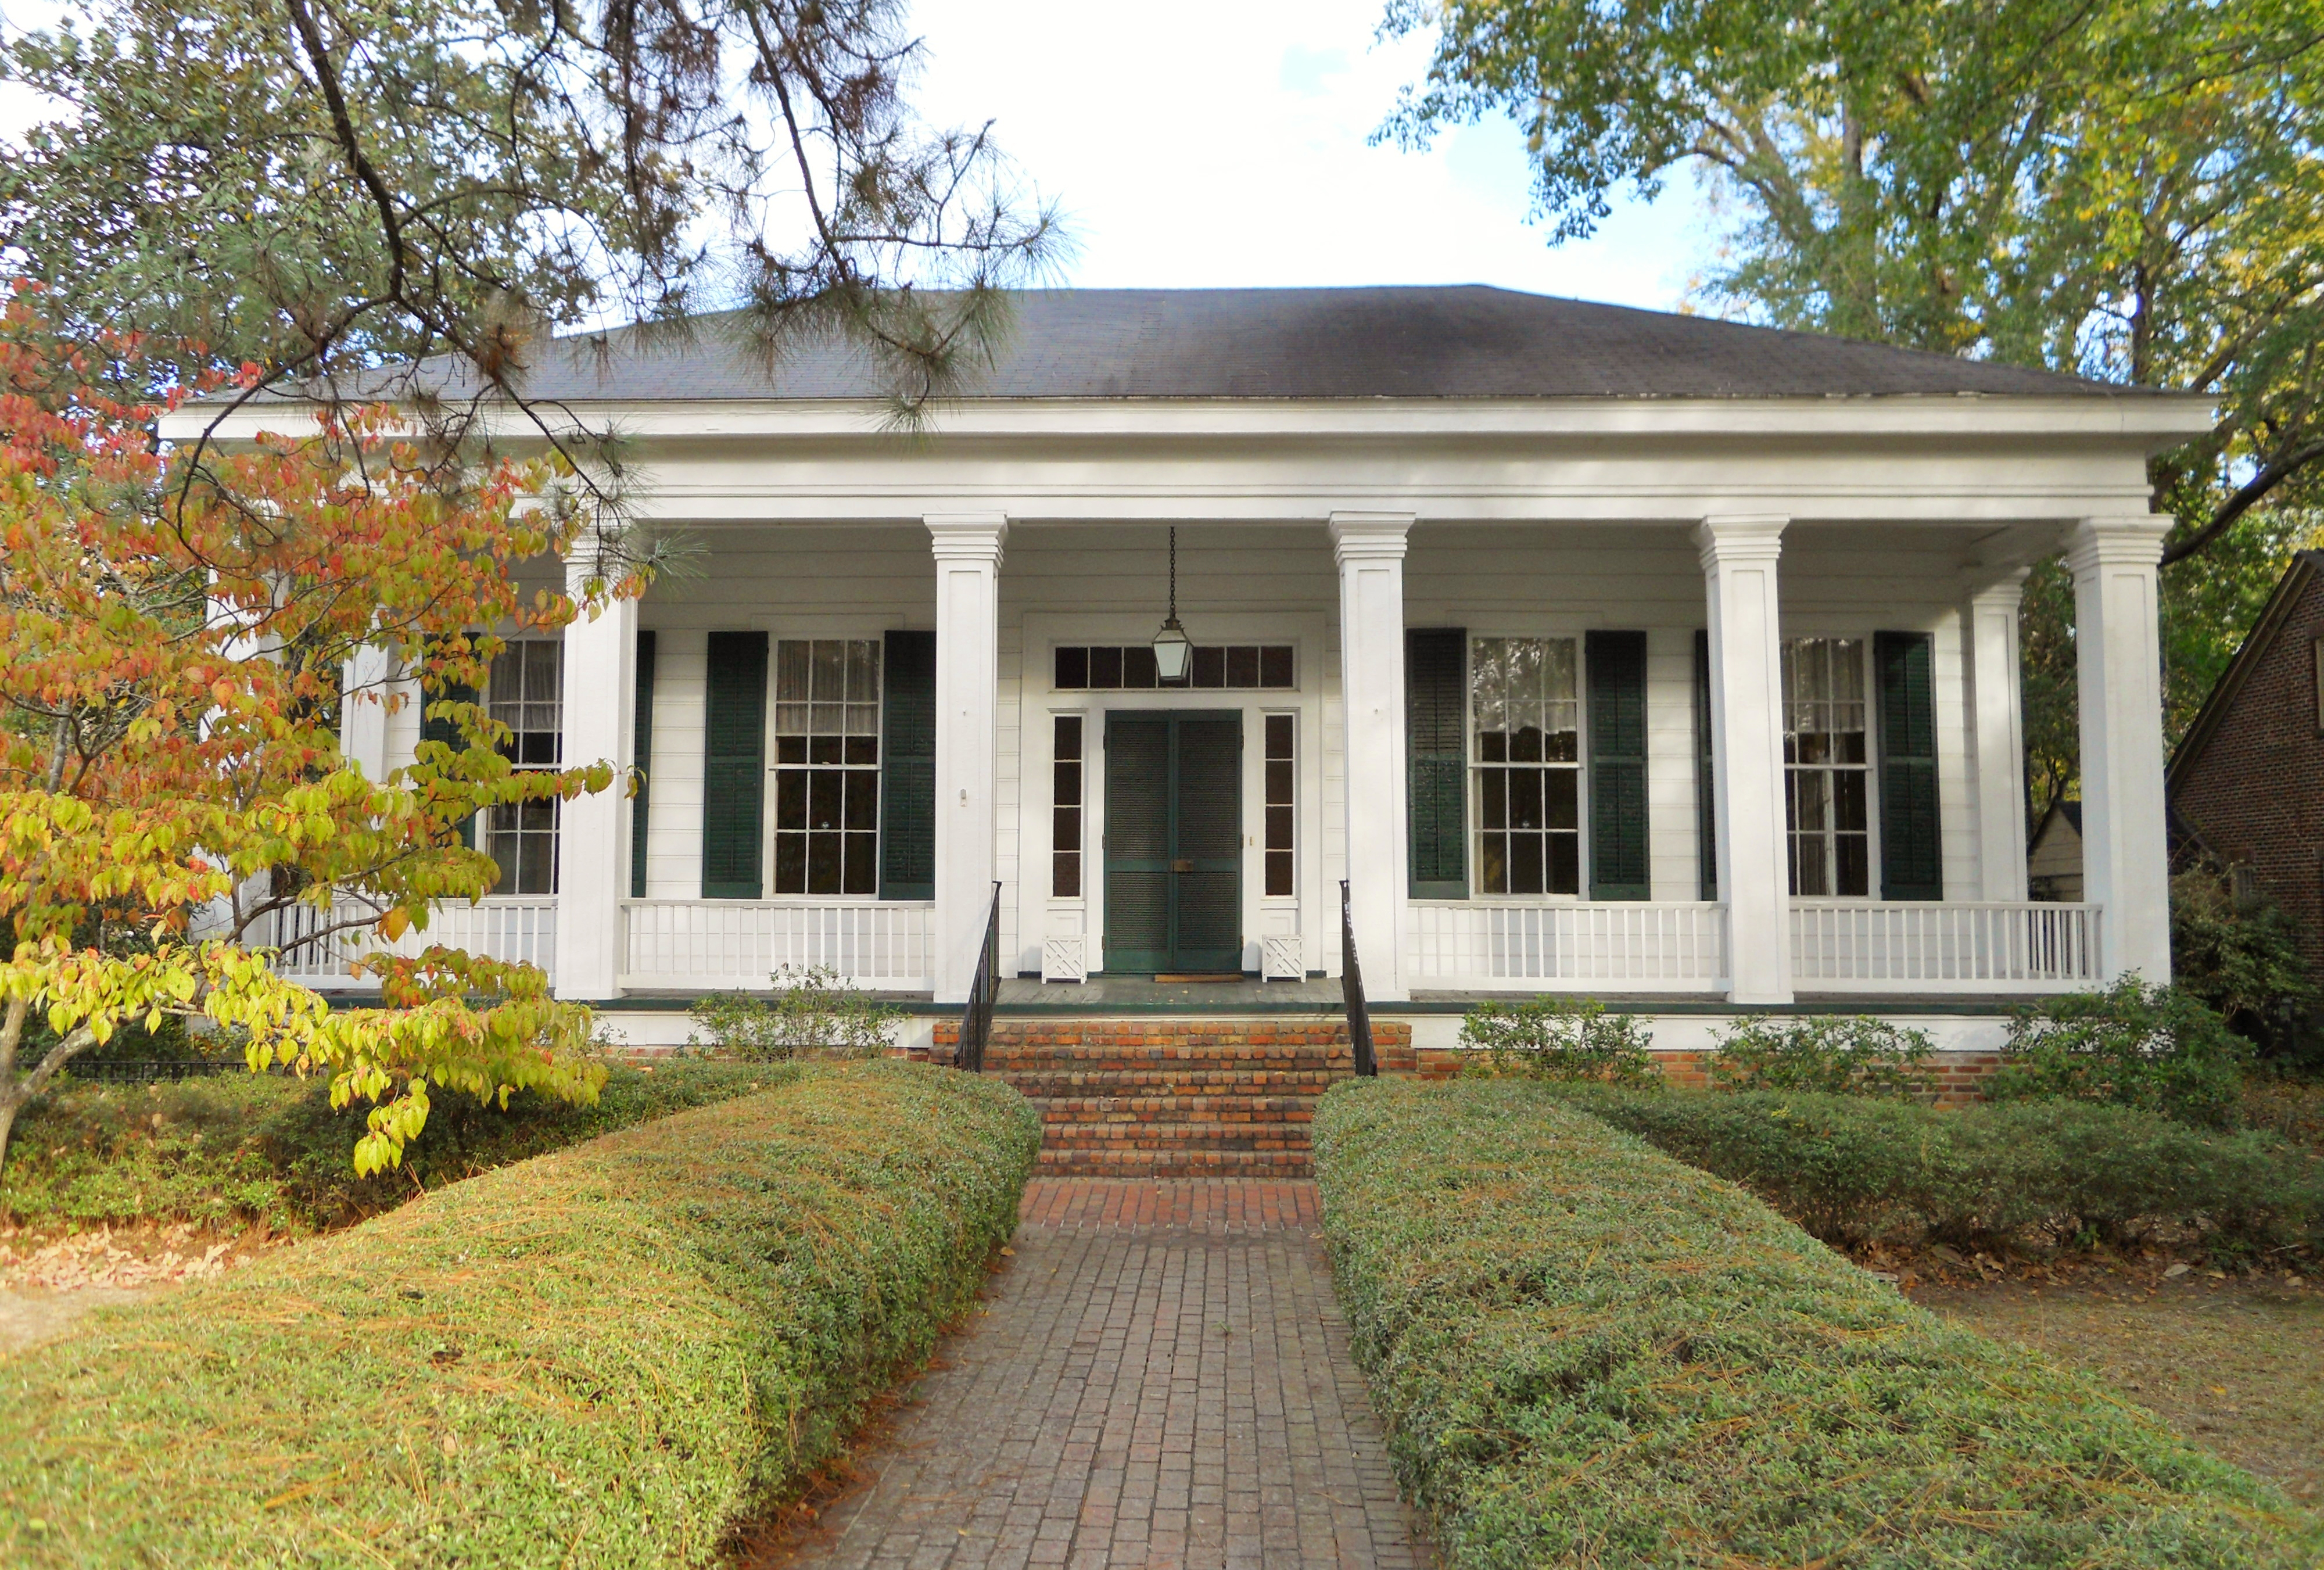 nice house builders in alabama #4: The Bray-Barron house. Classic style. | Southern Architecture | Pinterest |  Alabama, House and House building